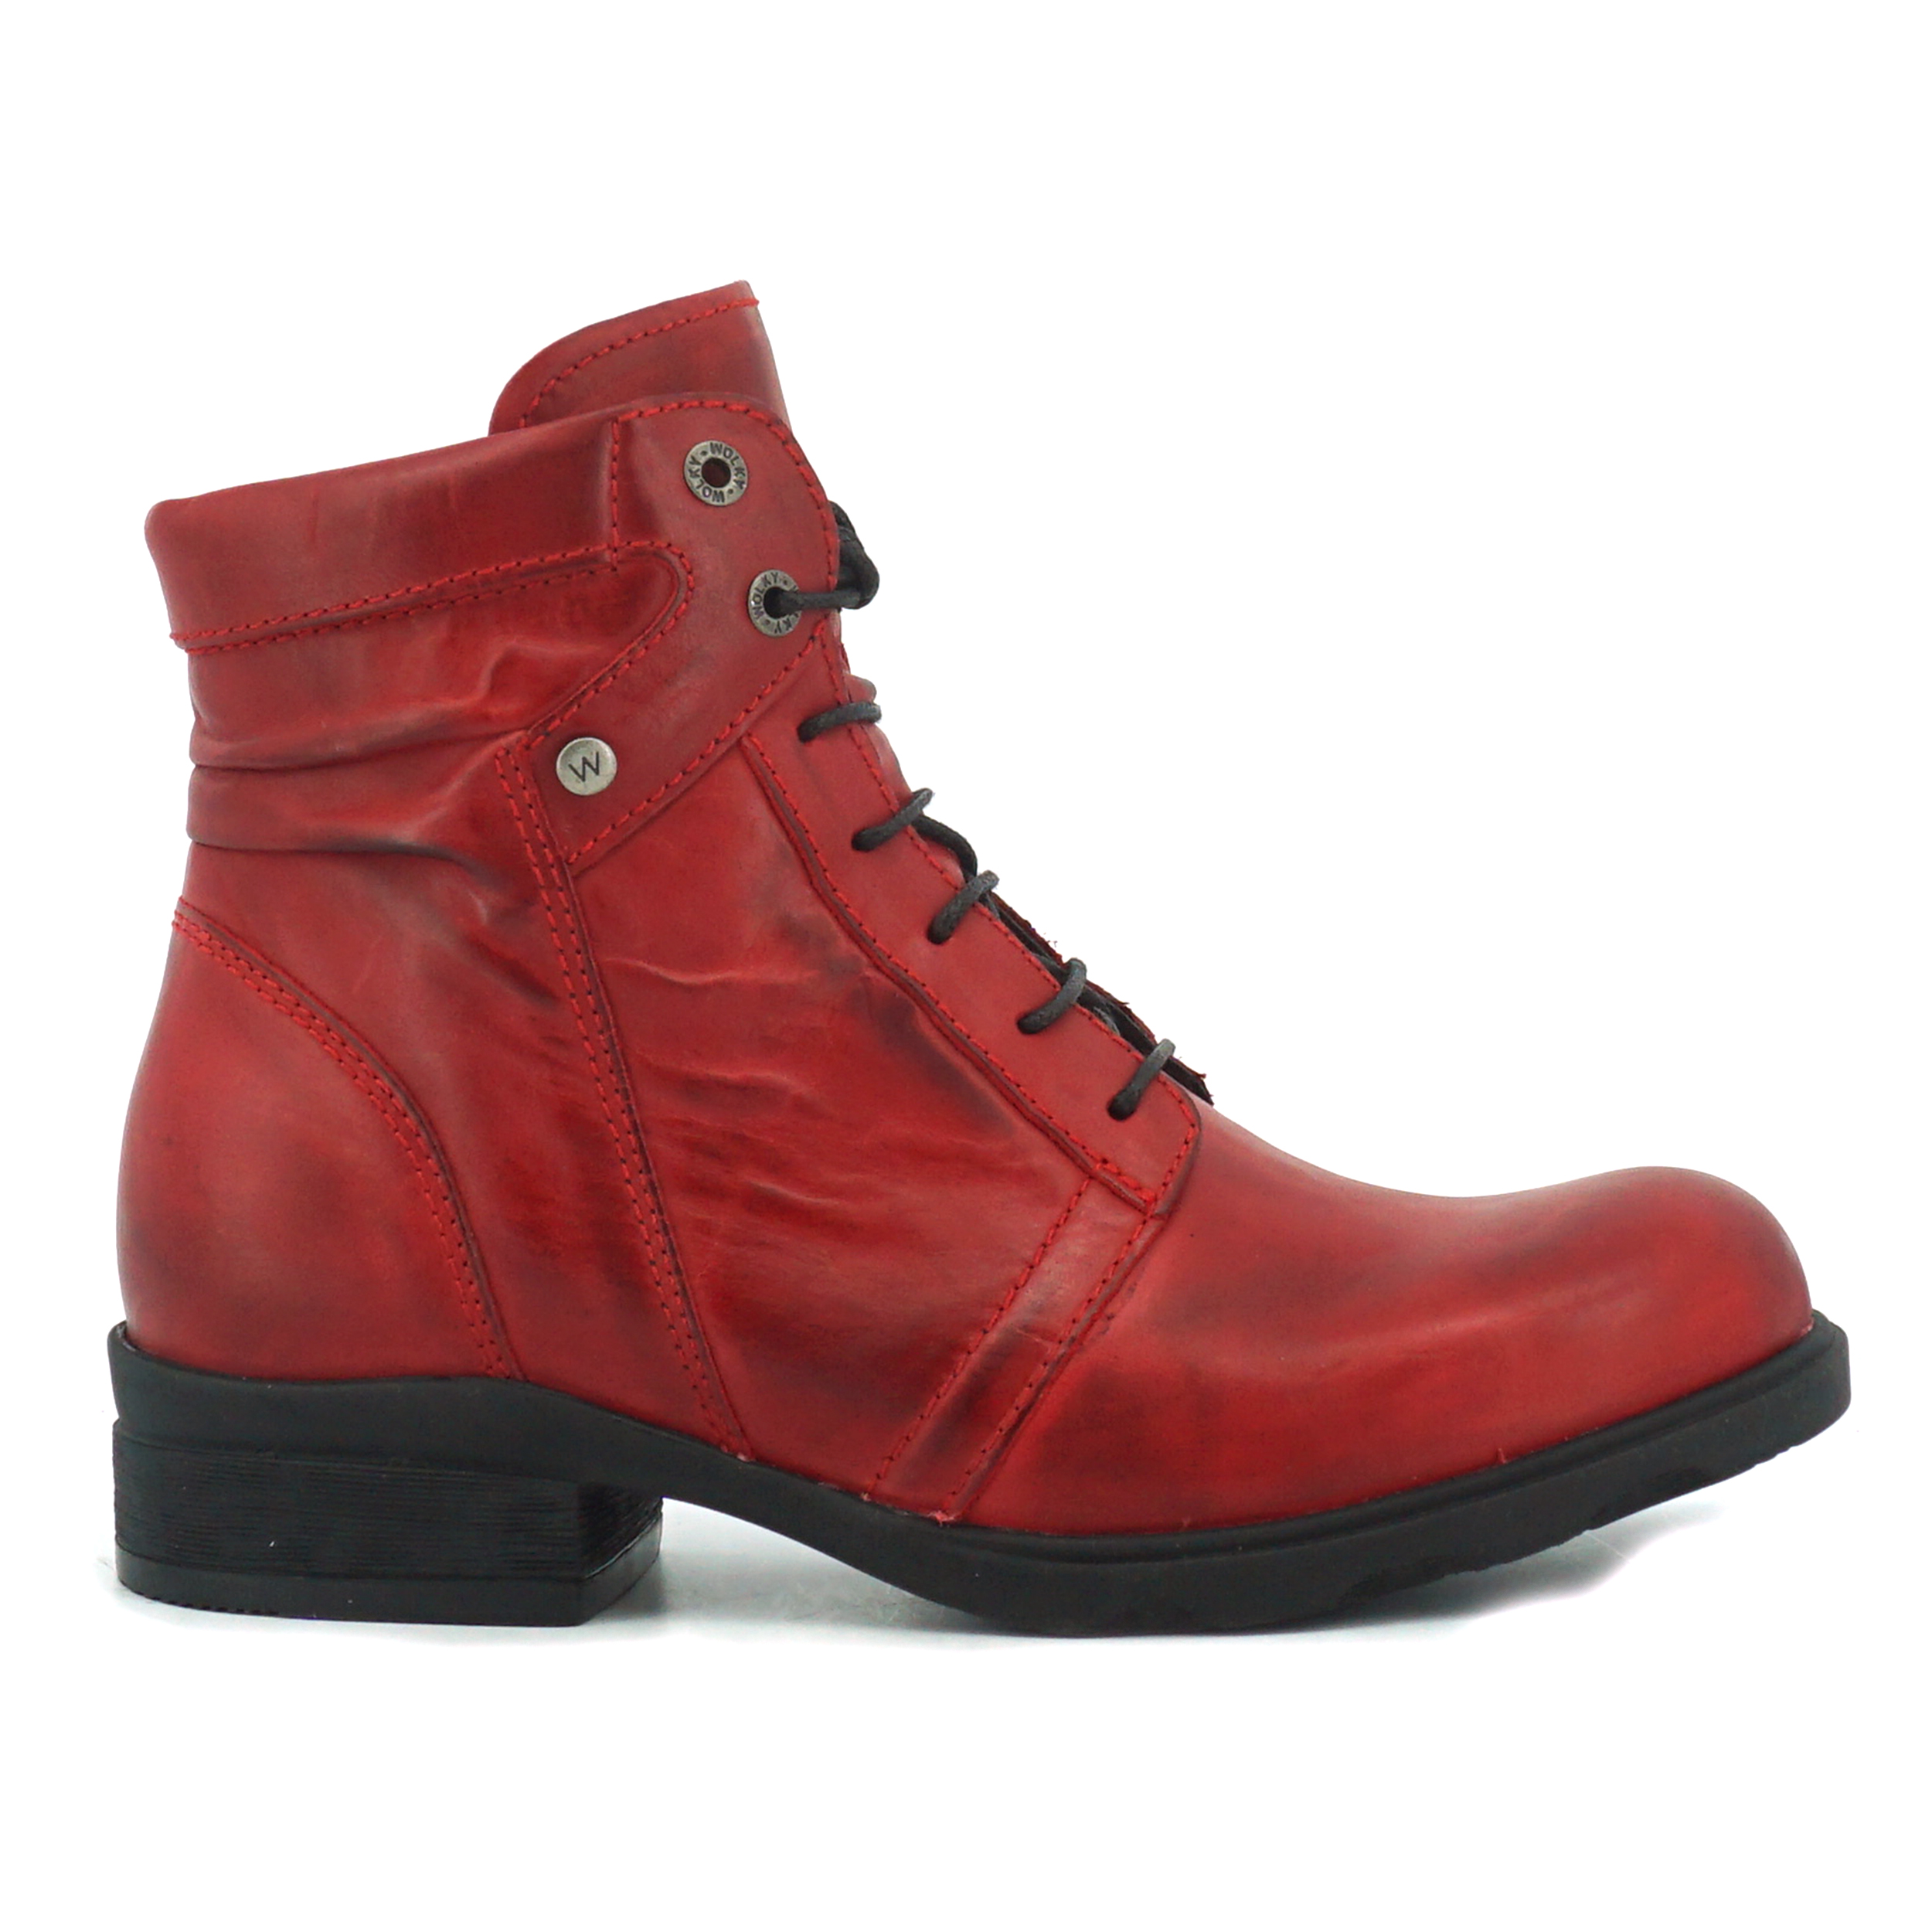 Wolky 0262530 Centre Softy Wax donkerrood dames veterboot